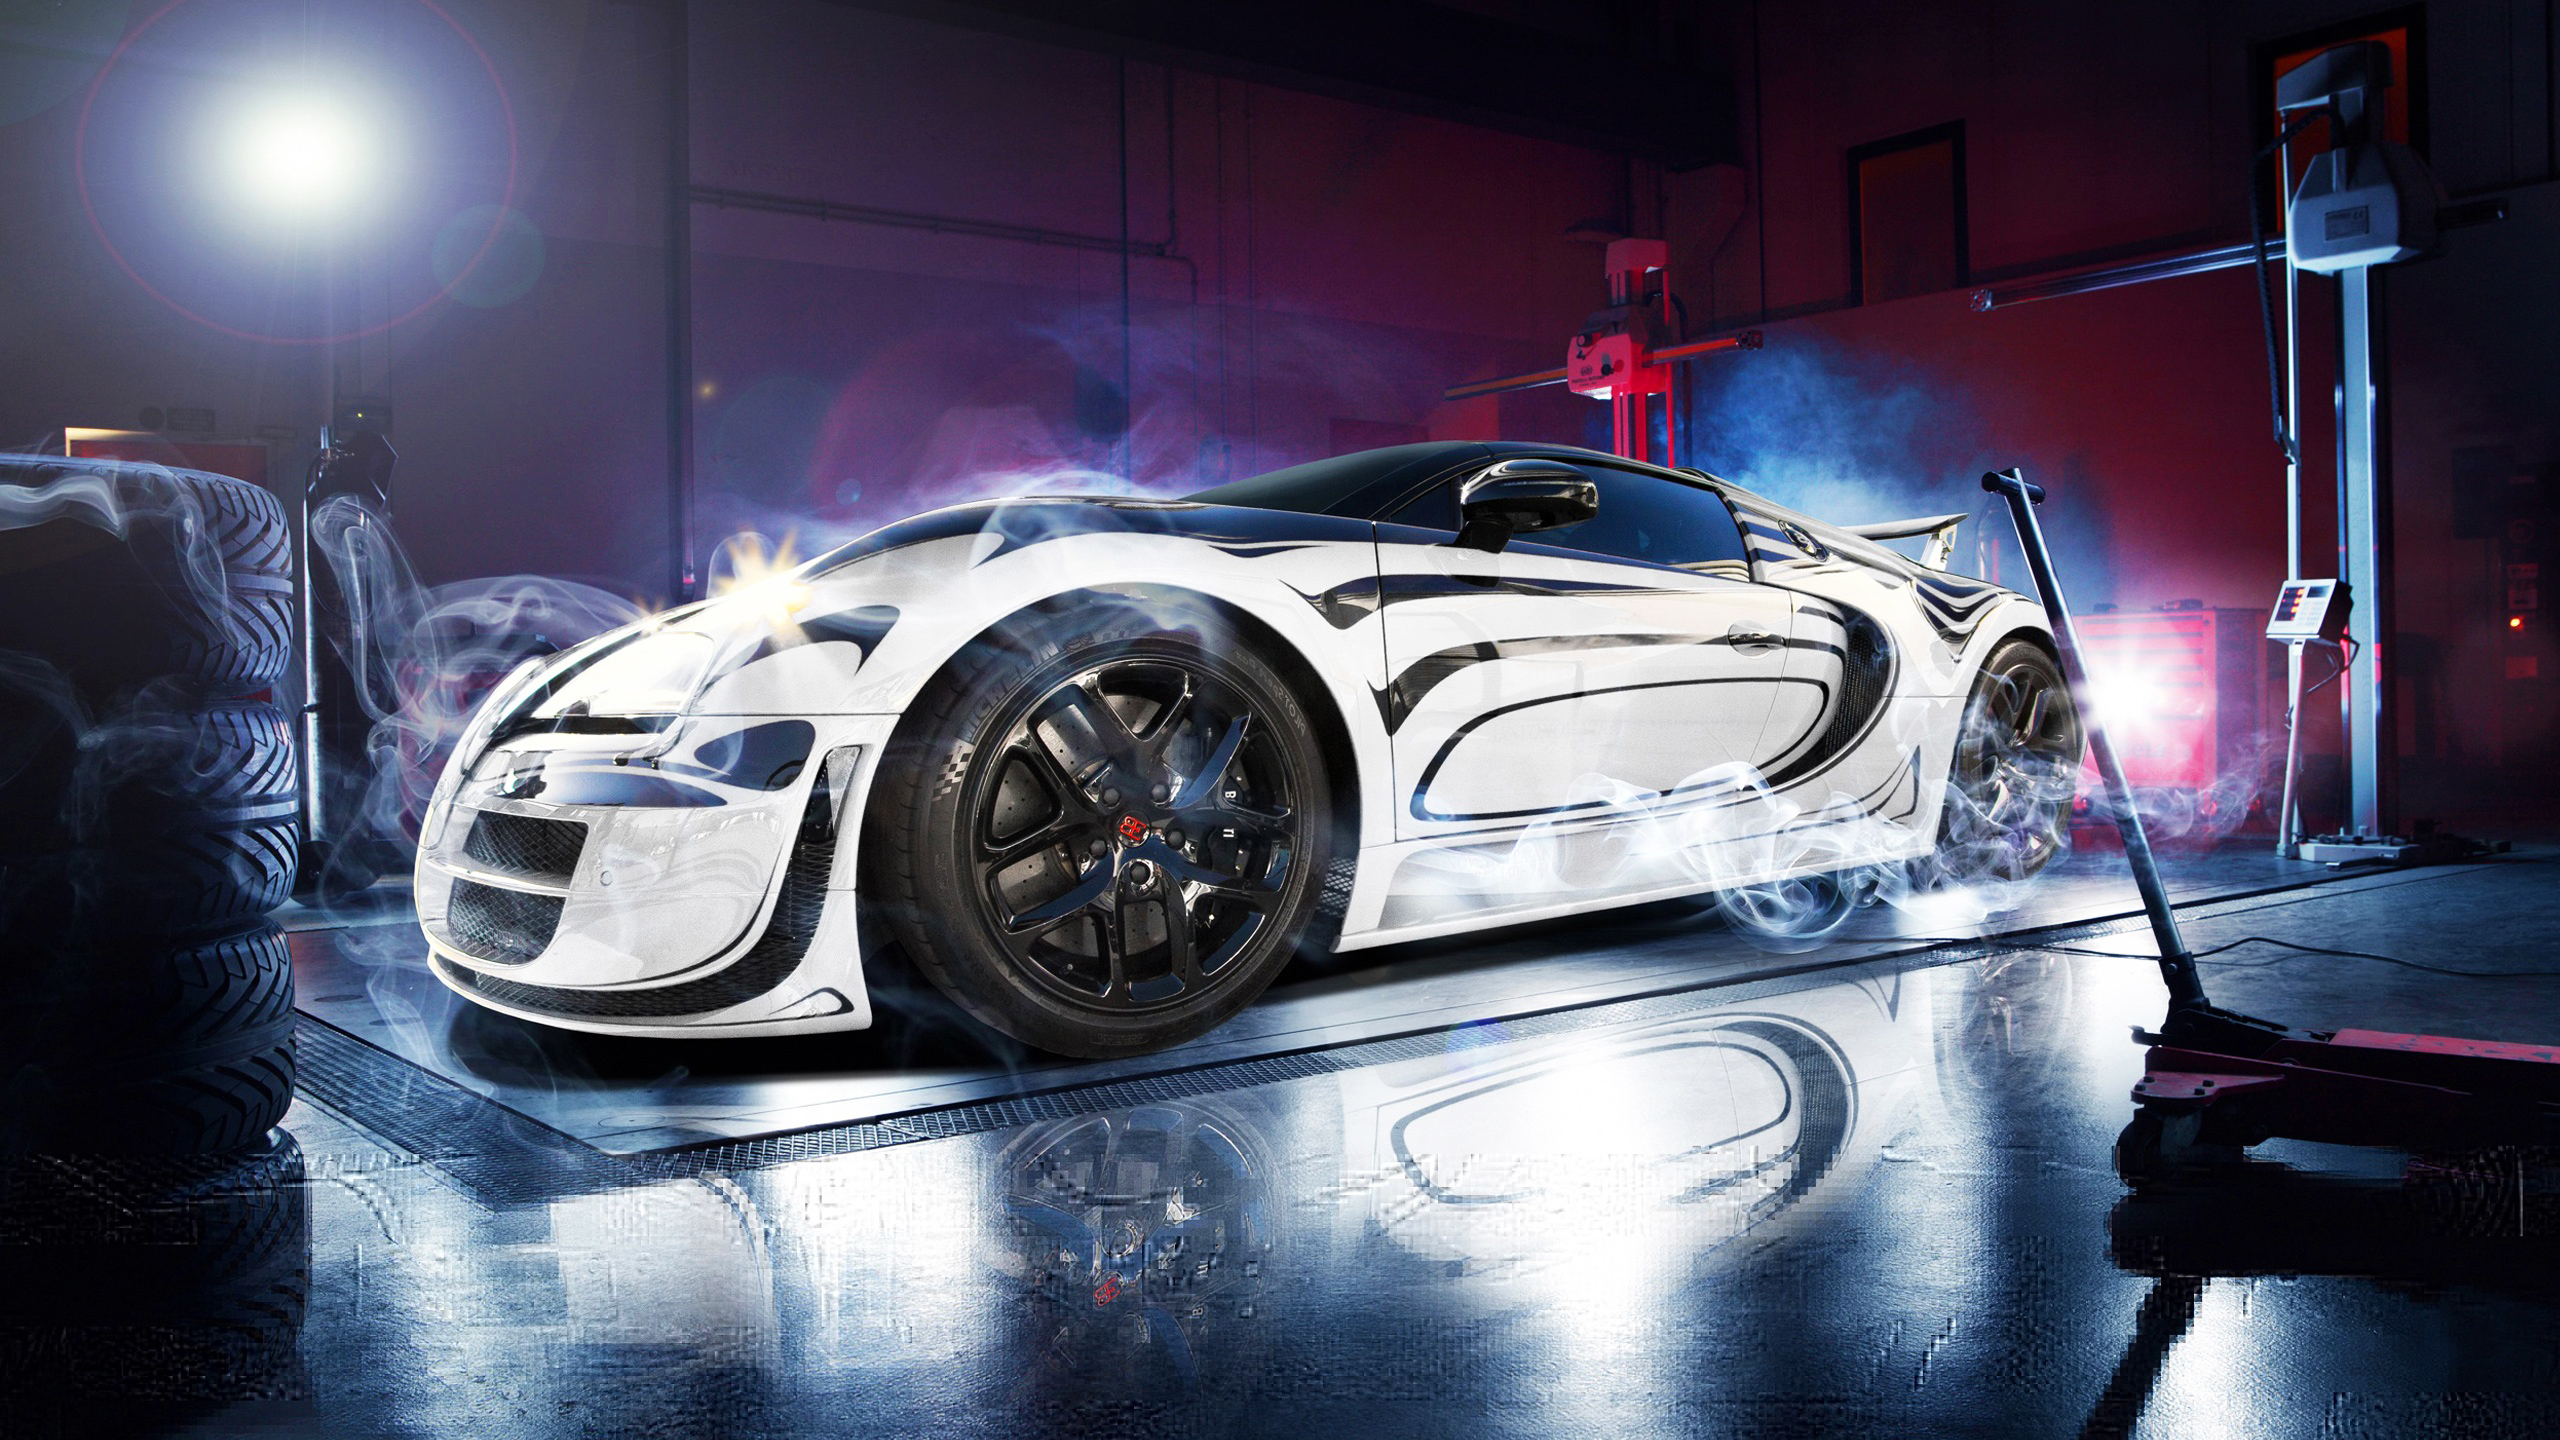 downloadfiles-wallpapers-2560_1440-bugatti_veyron_super_car_15860